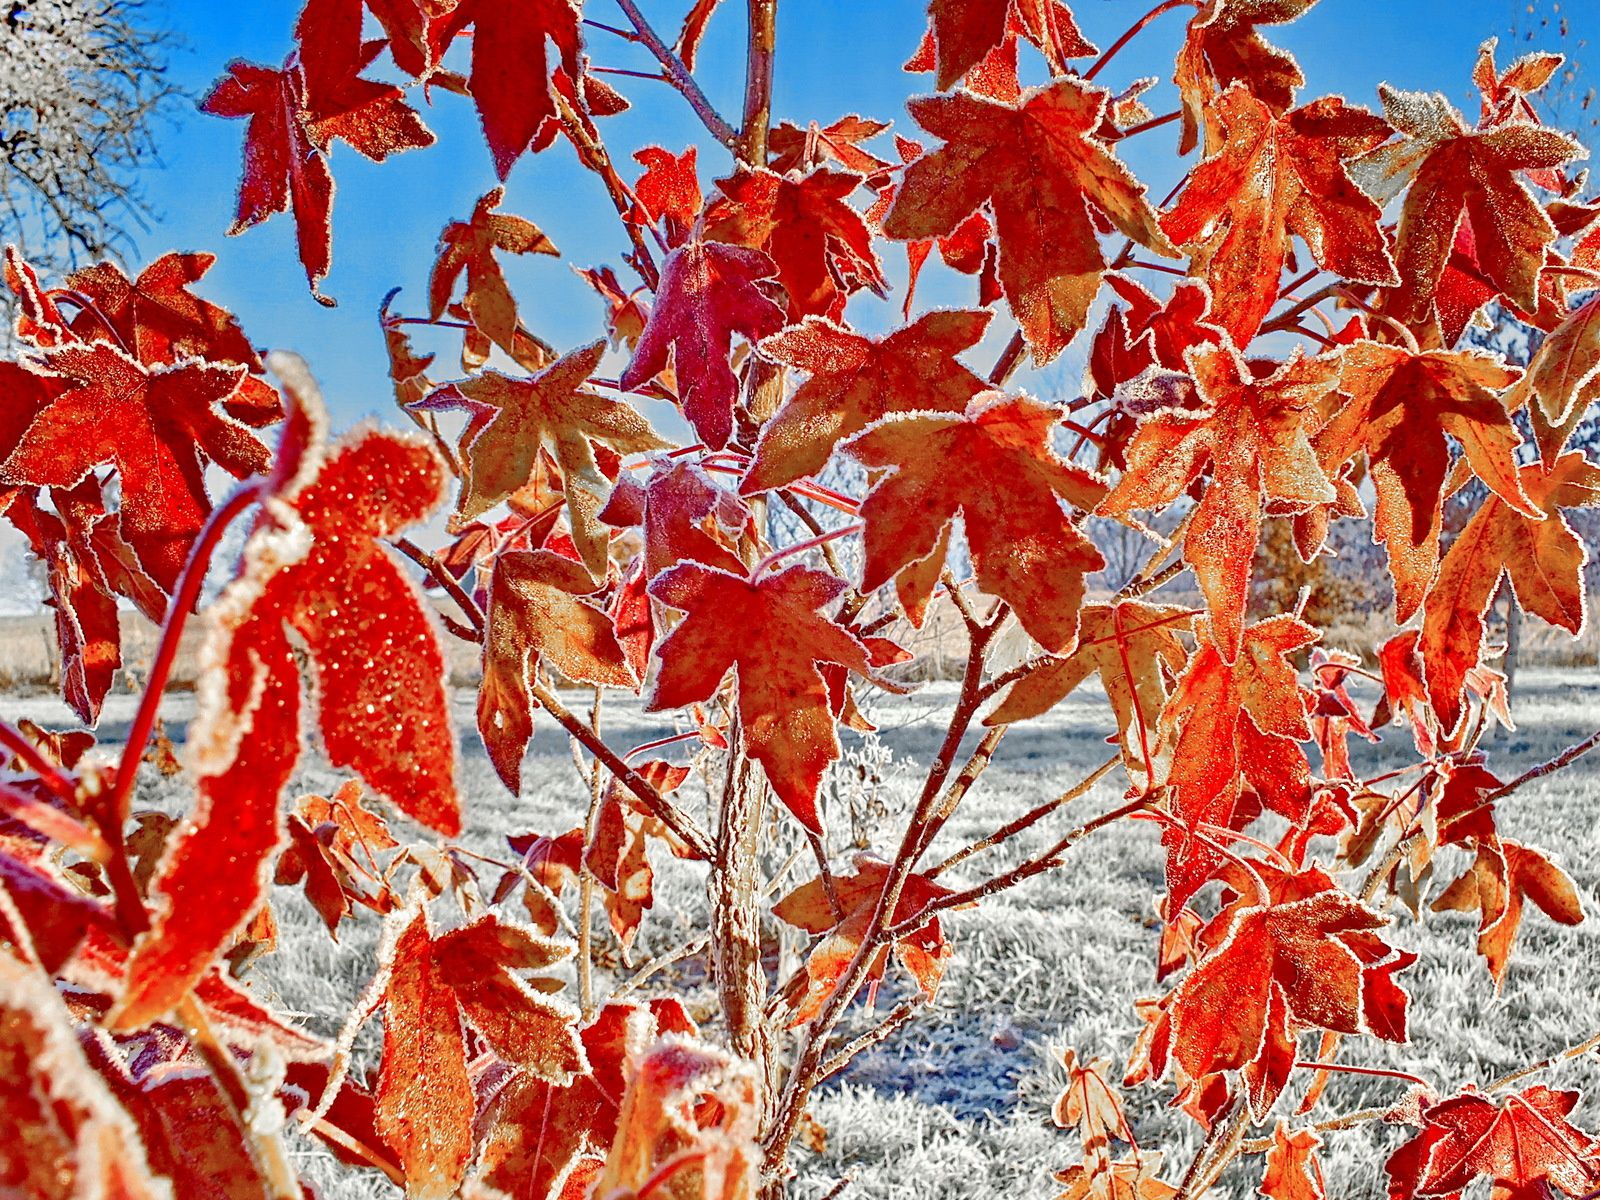 Liquidambar coup de soleil dans la gelée du matin - Liquidambar sunlight on the morning frost